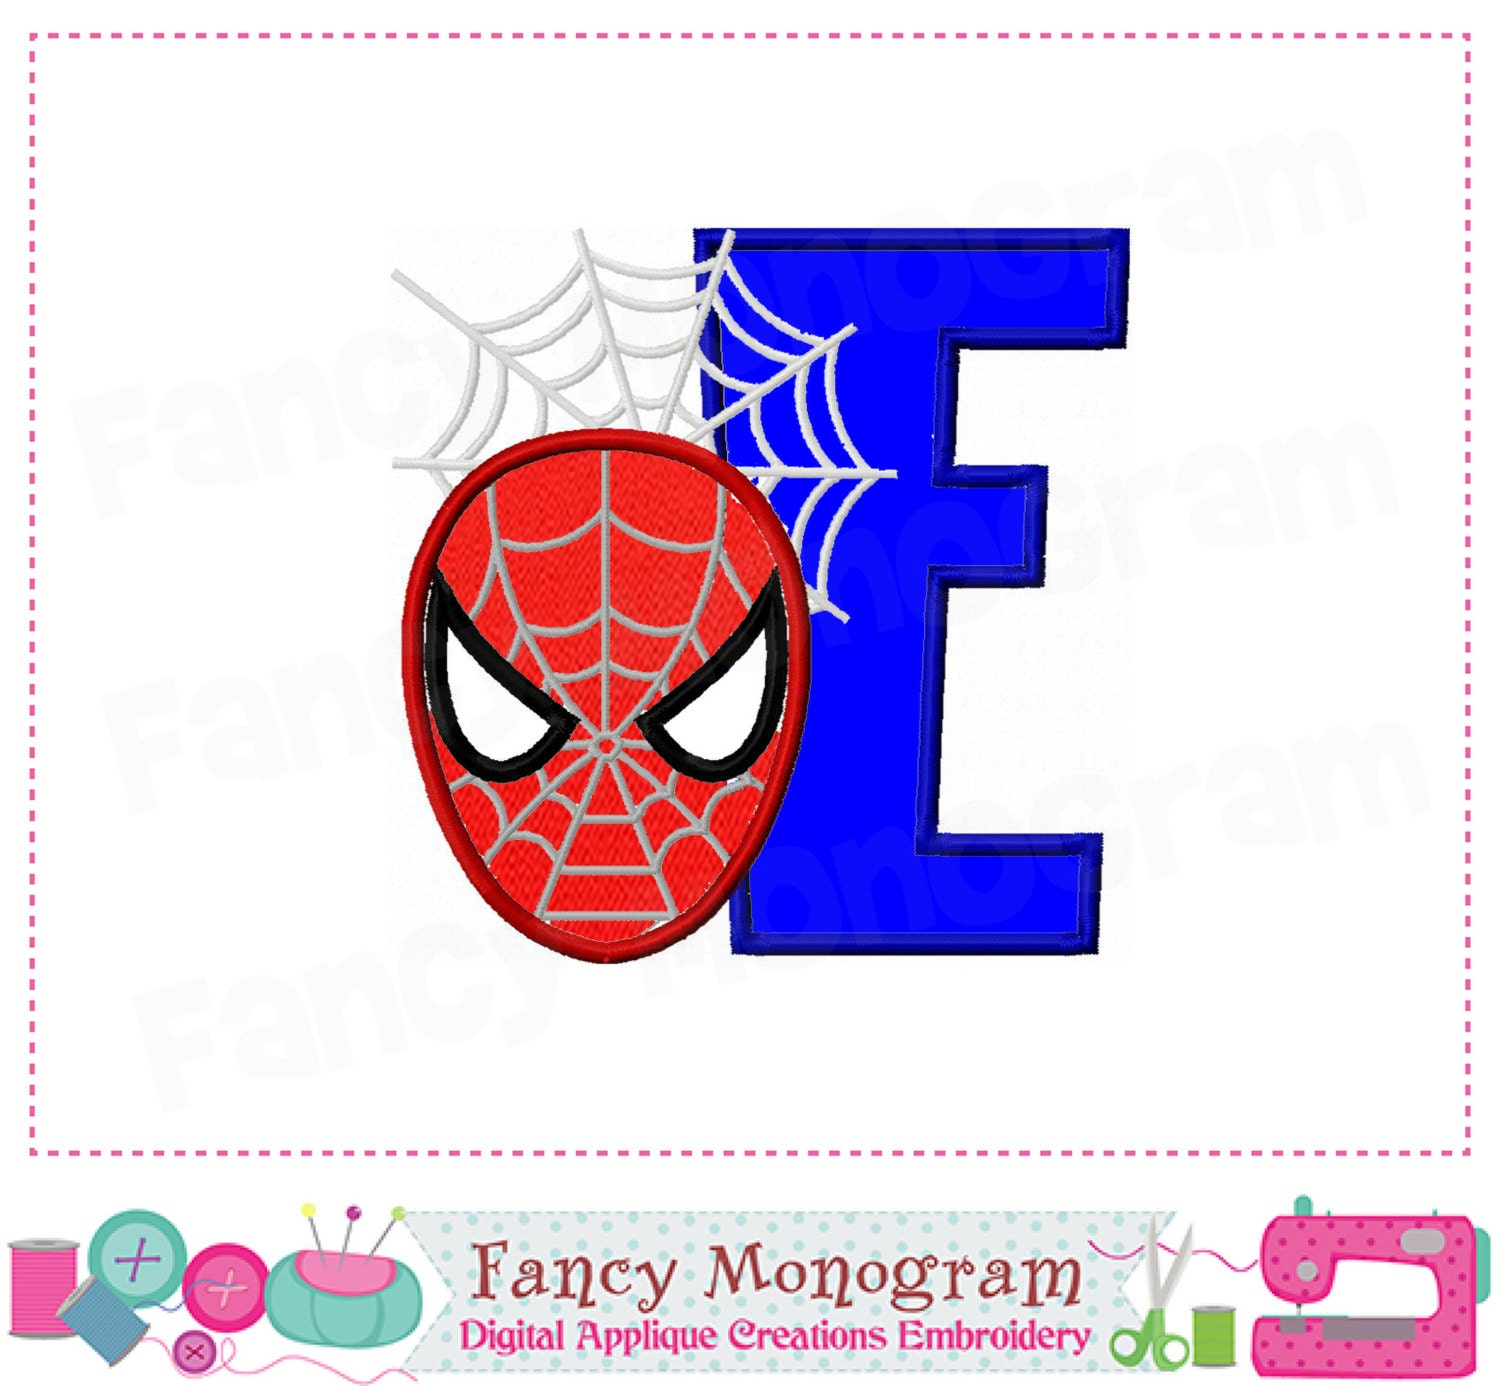 spiderman monogram e appliquespiderman letter e appliqueefont espiderman appliqueespiderman designspider manboys applique